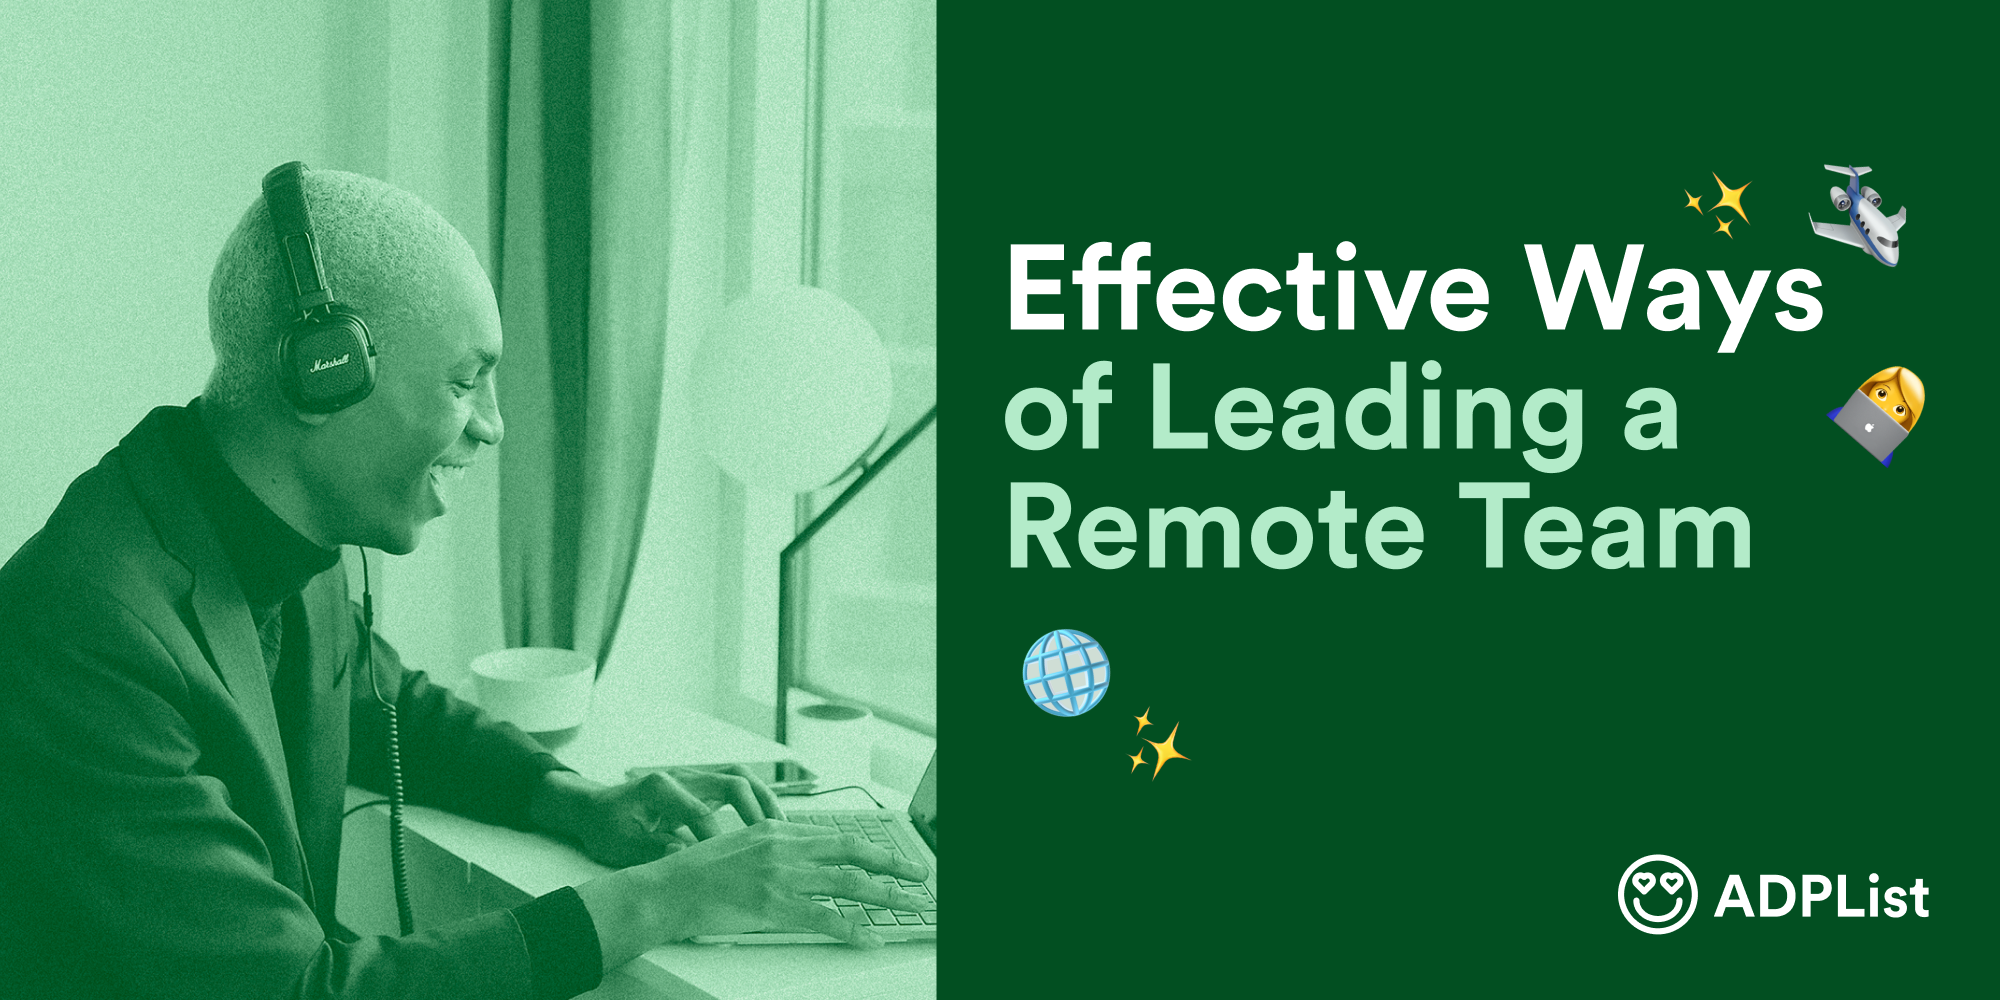 Effective Ways of Leading a Remote Team